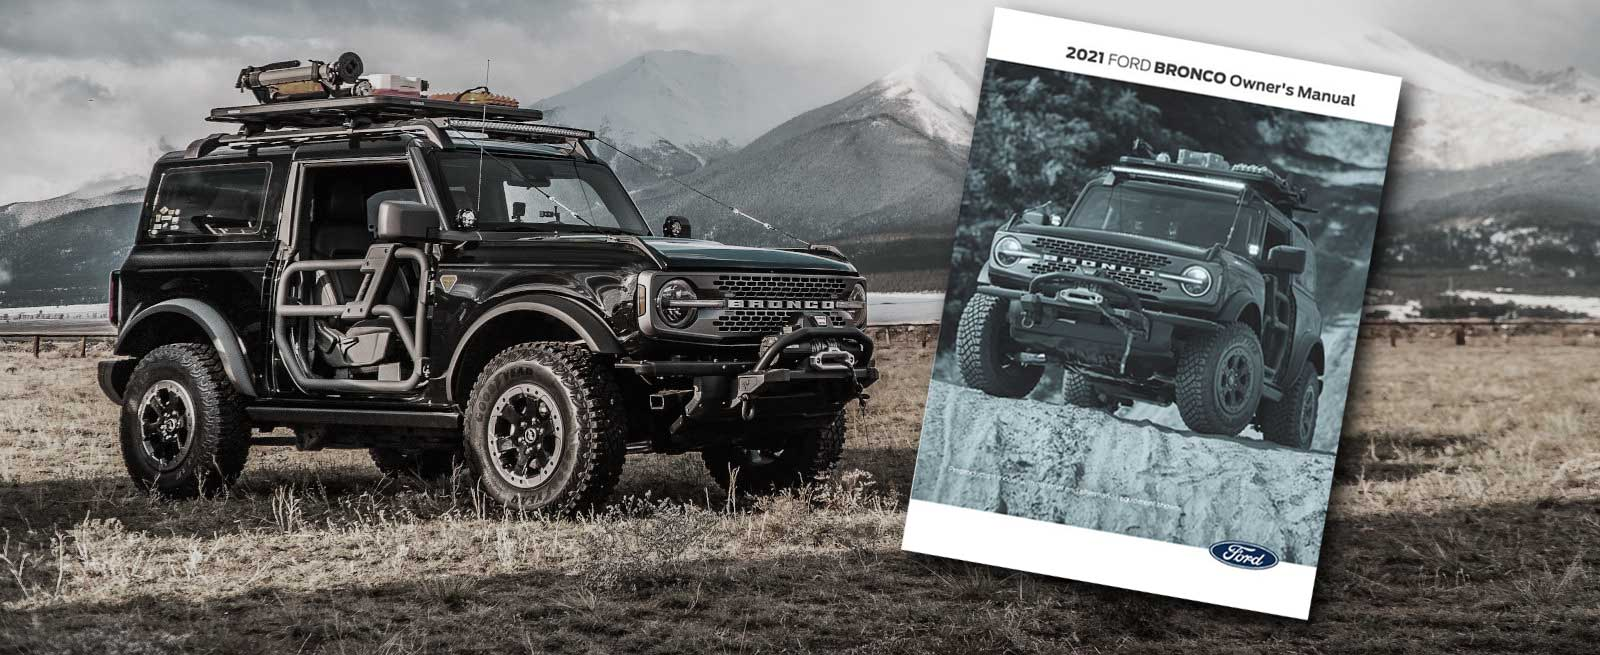 2021 Ford Bronco Owner's Manual Downloadable PDF